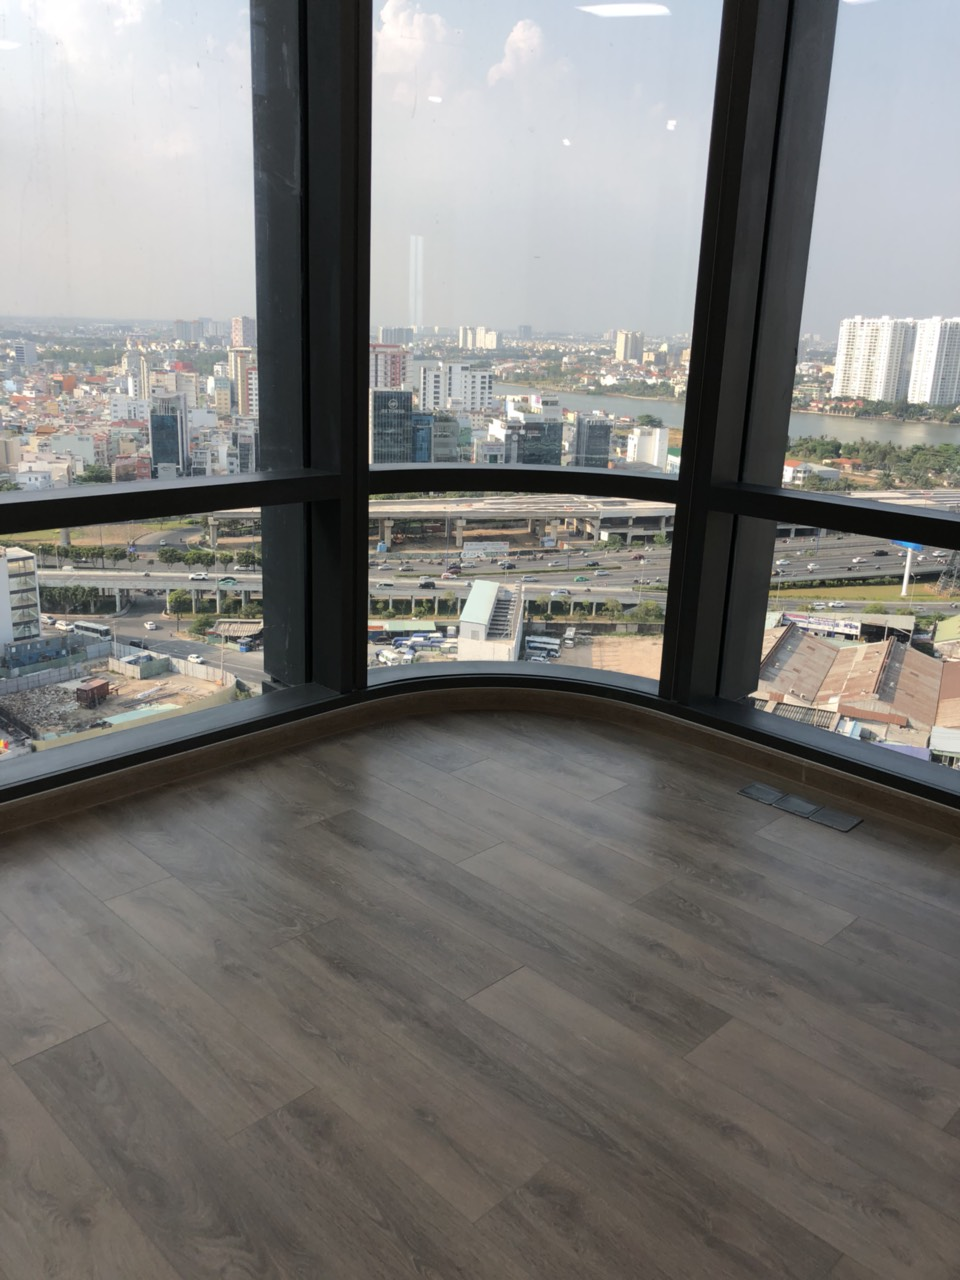 Apartment for rent BT105L5202 (8)